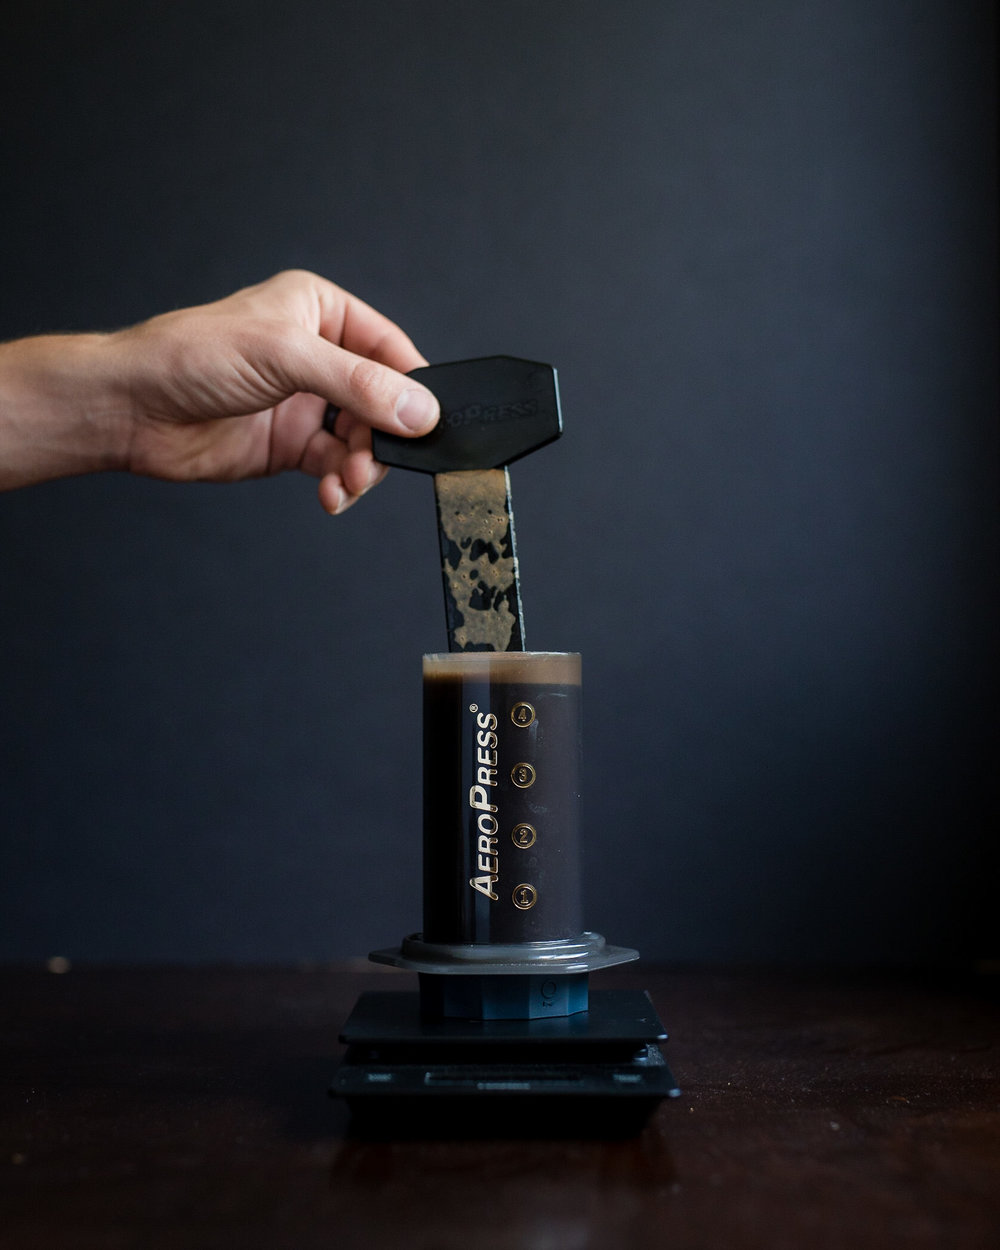 HandsomeWade-Aeropress-Brew-Guide-13.jpg